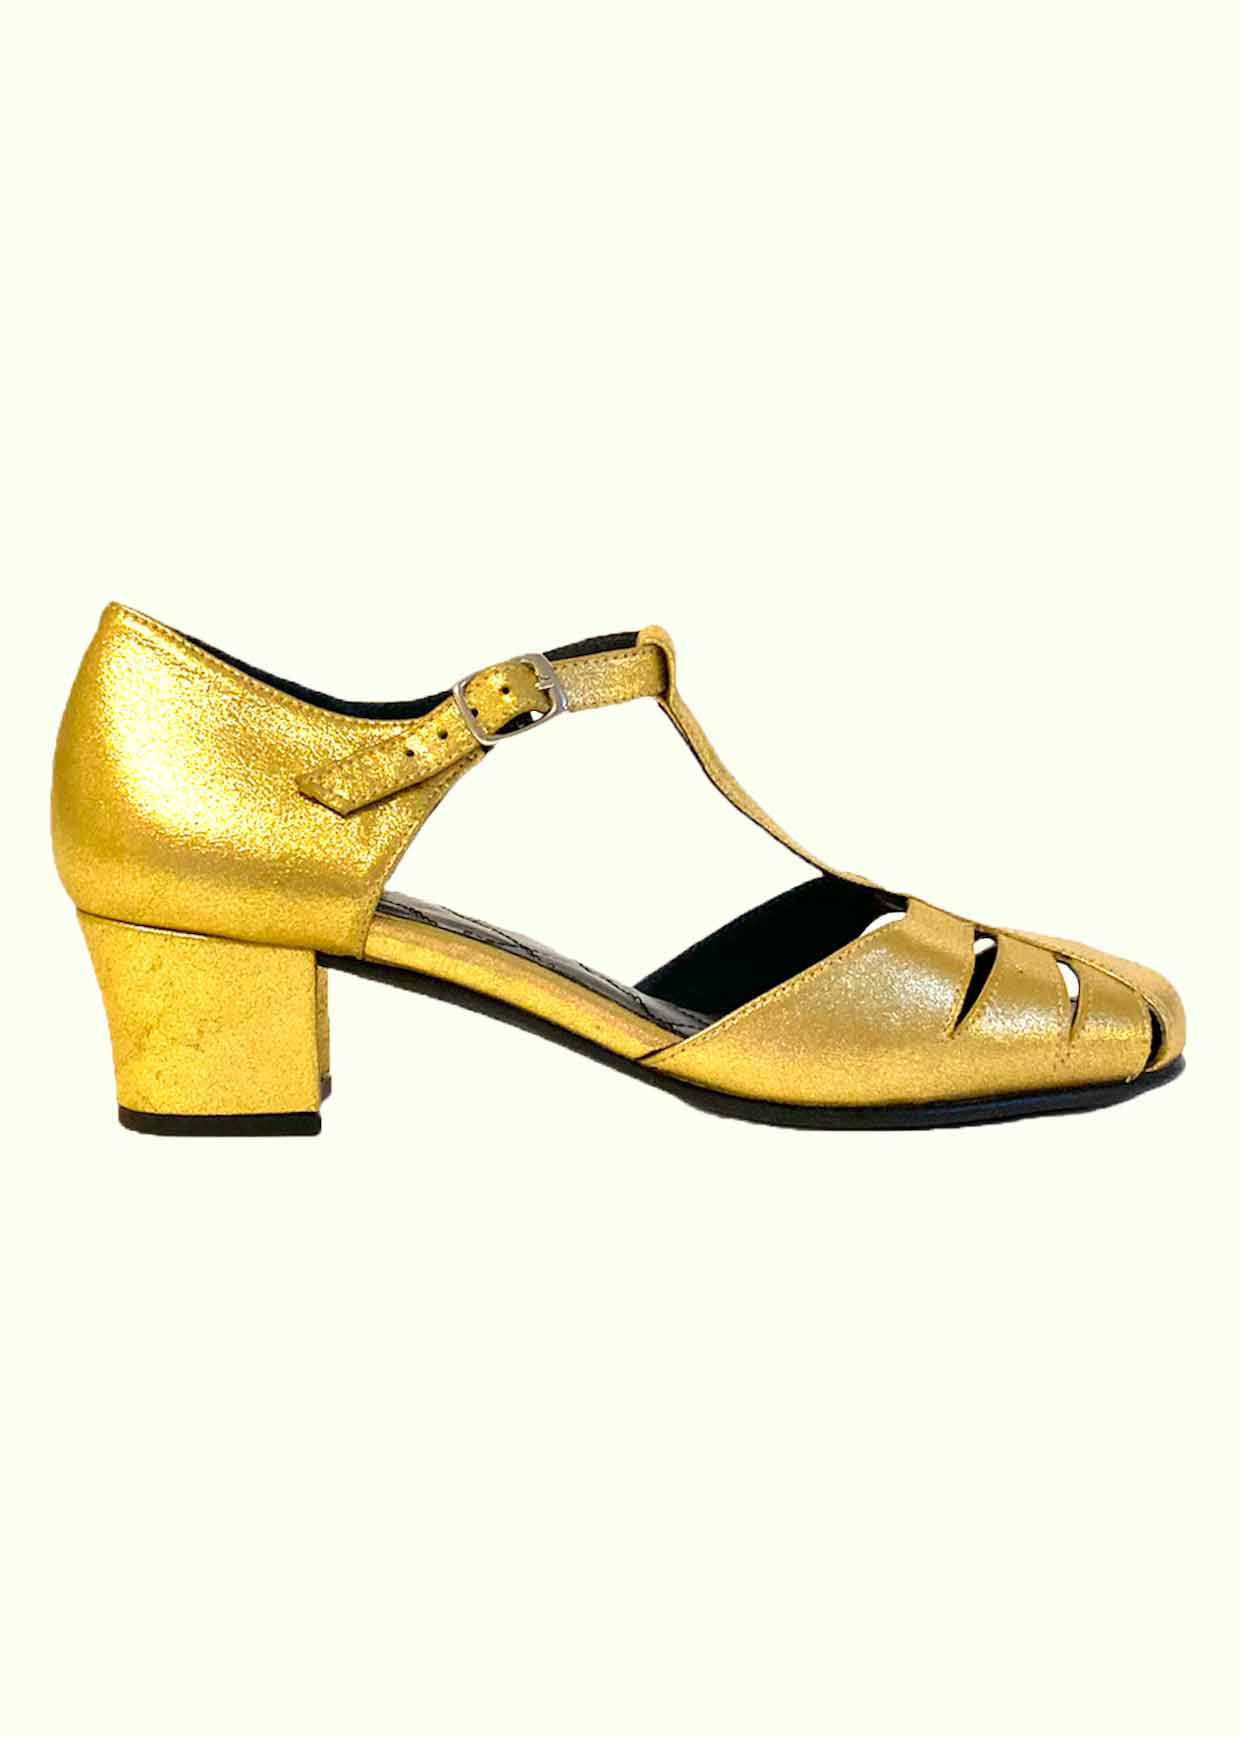 Gold shoes from Nordic ShoePeople